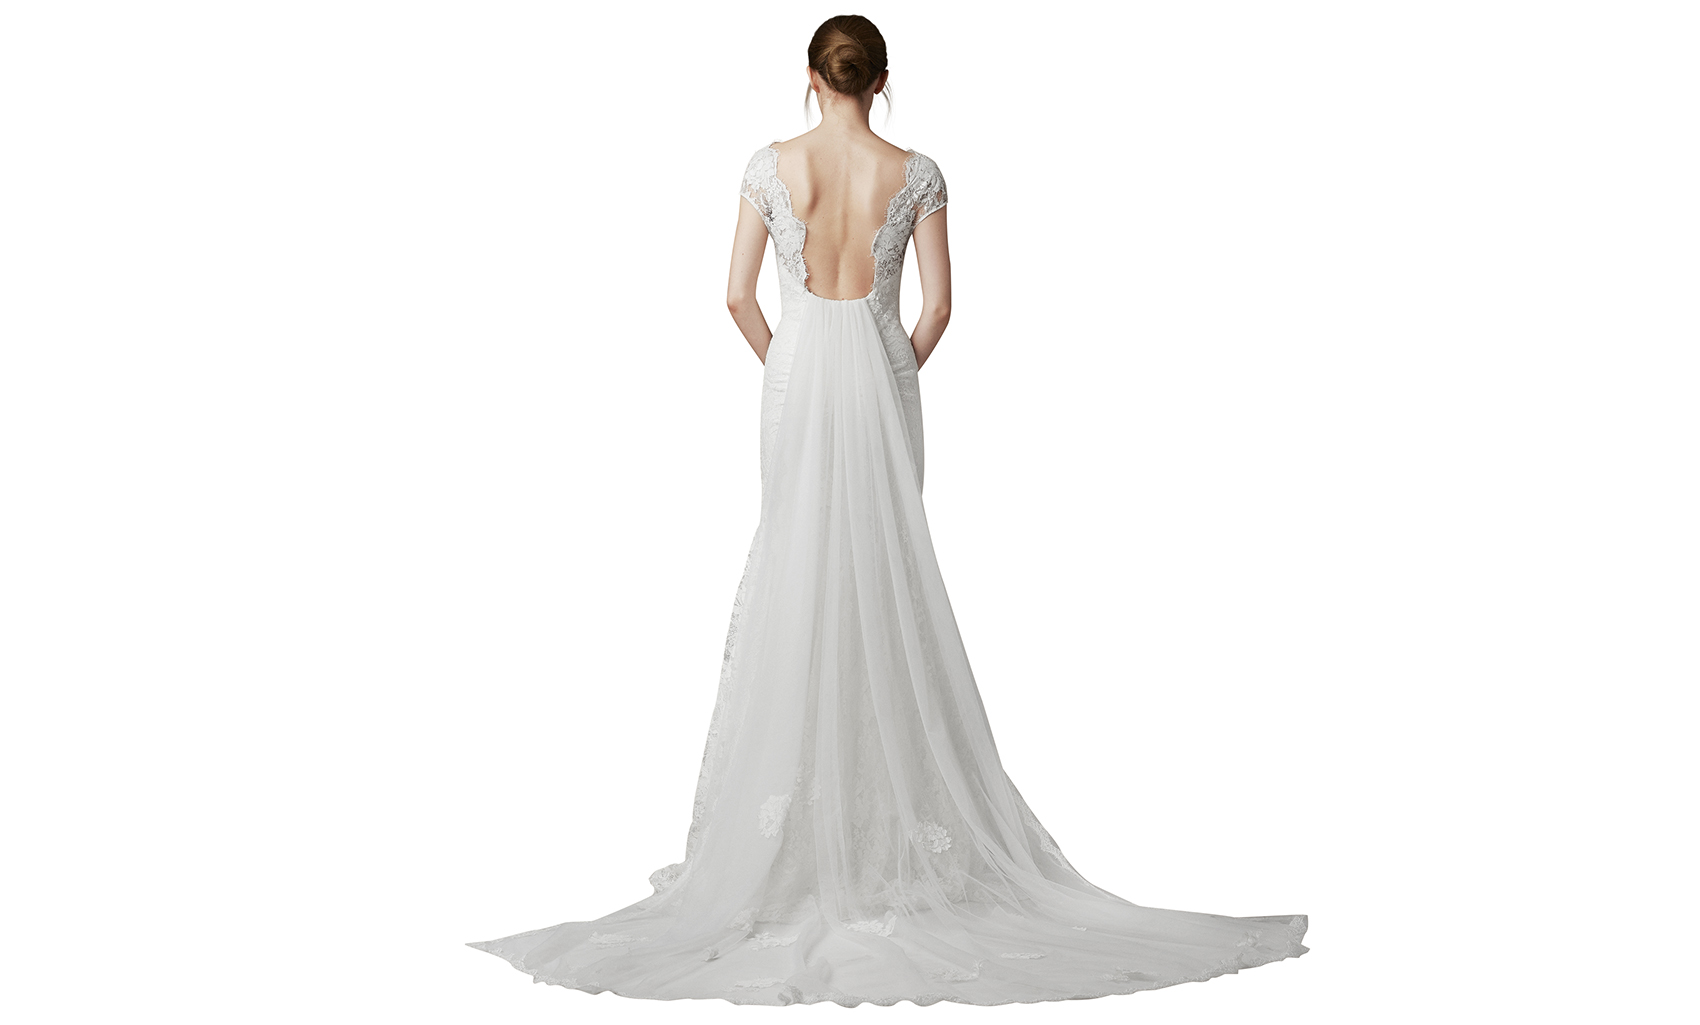 Lela Rose bridal gown